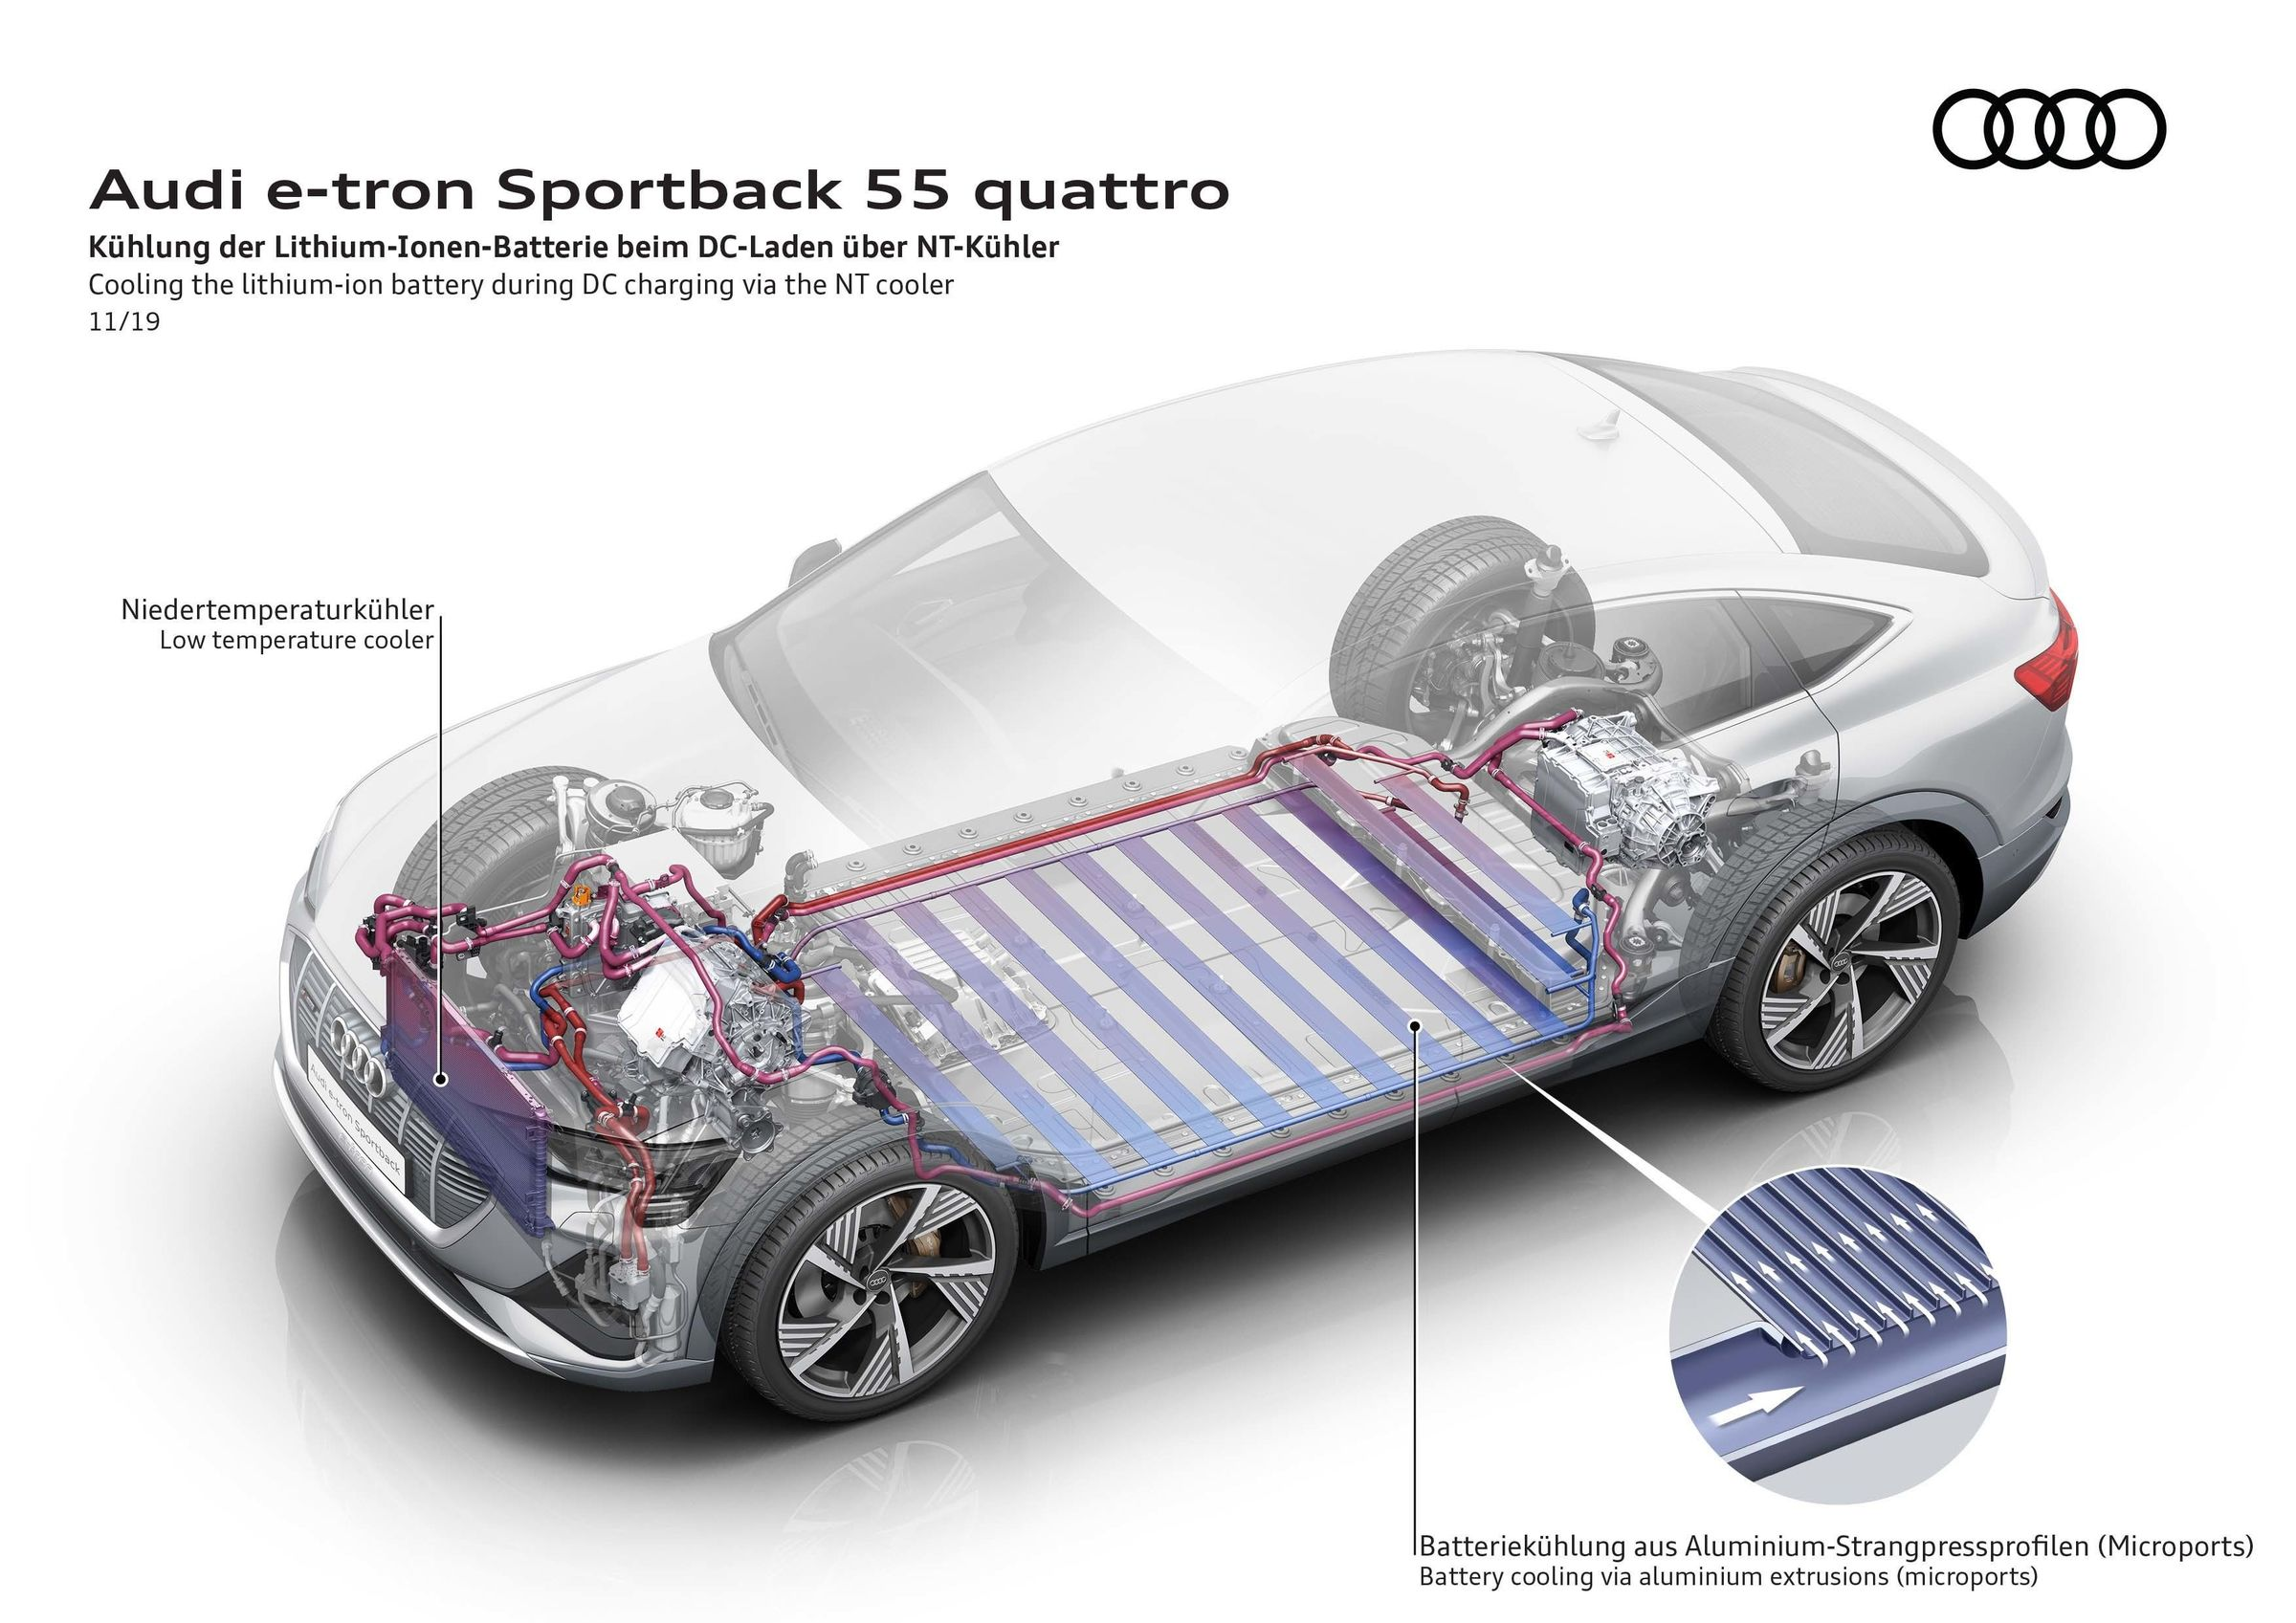 Charging capacity vs. charging speed: What constitutes high charging performance - Image 7